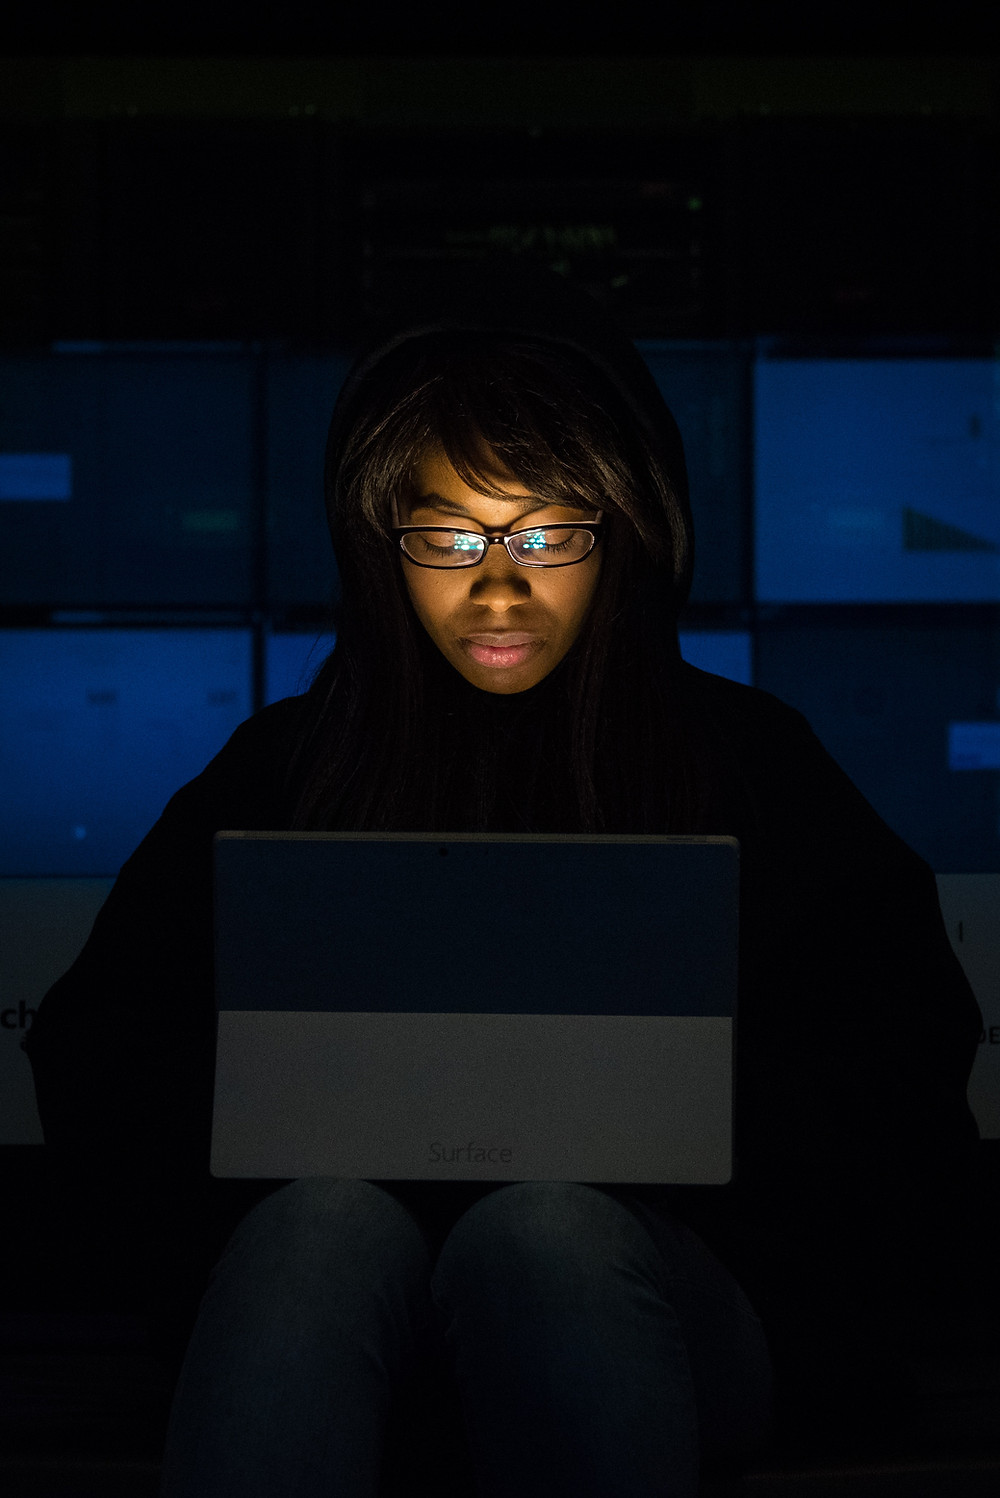 A person sits in the dark looking at their laptop, contemplating the future of work.